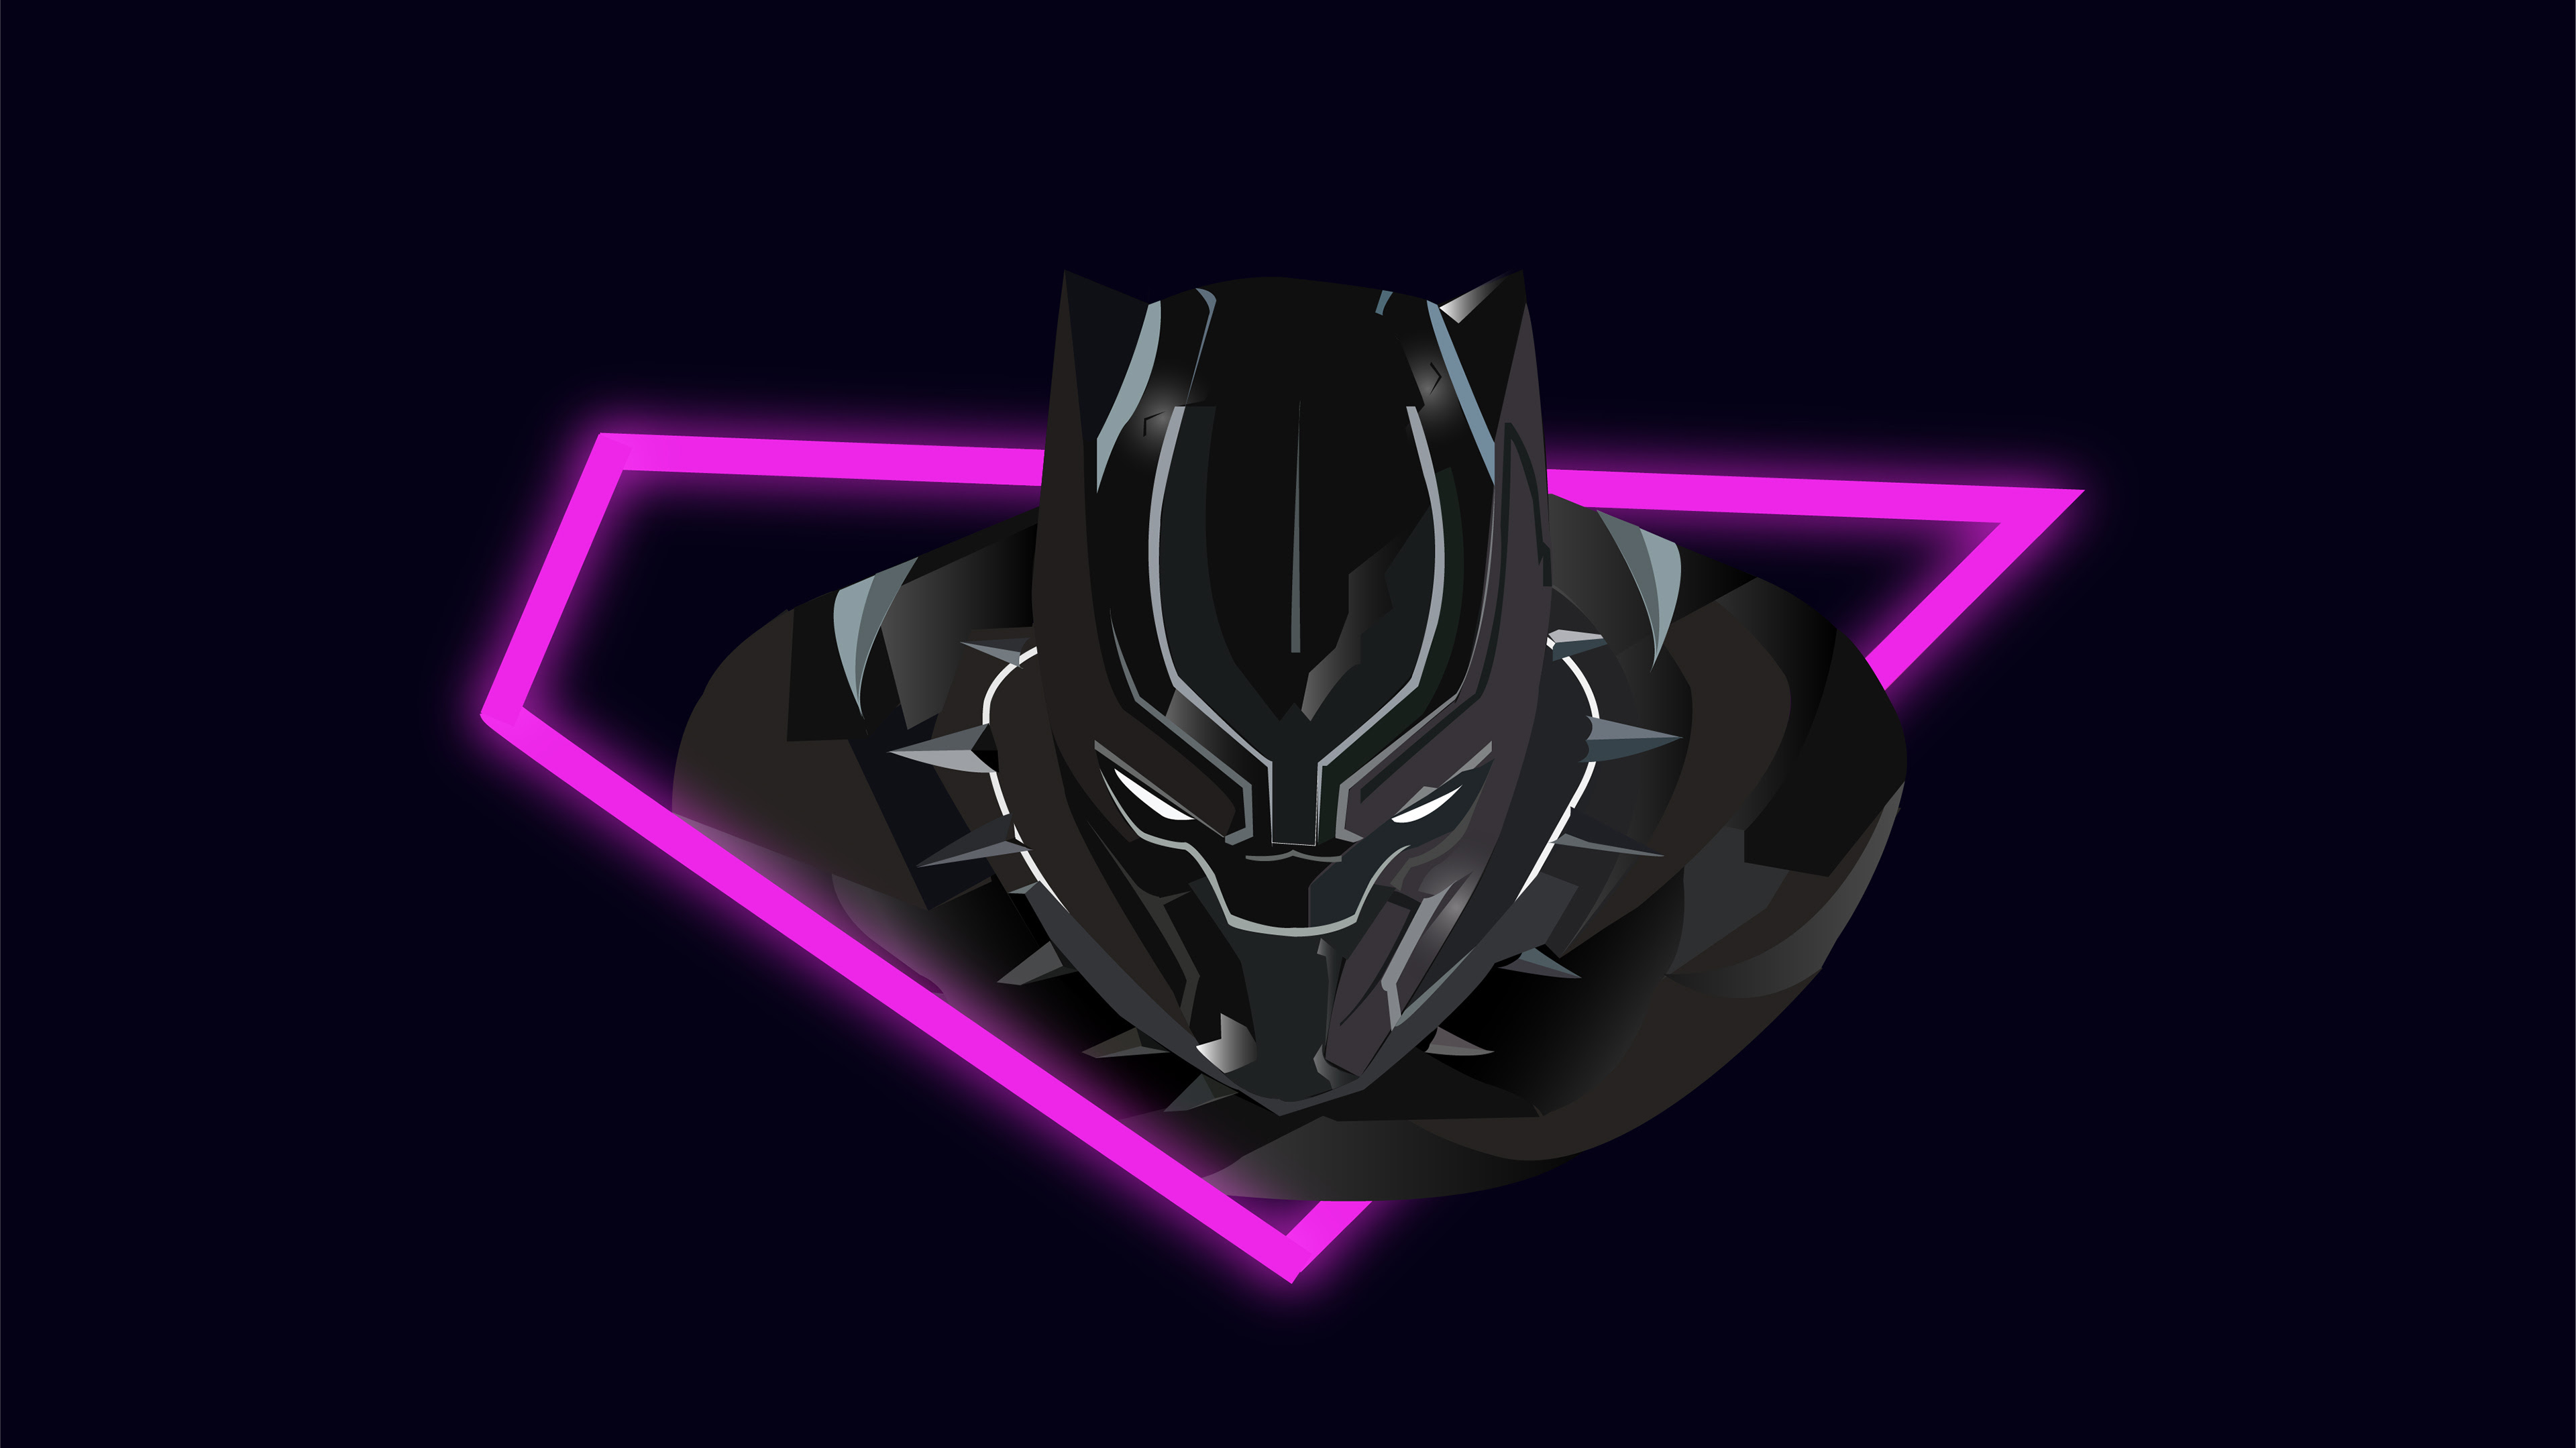 Unduh 98 Wallpaper Android Black Panther HD Terbaik